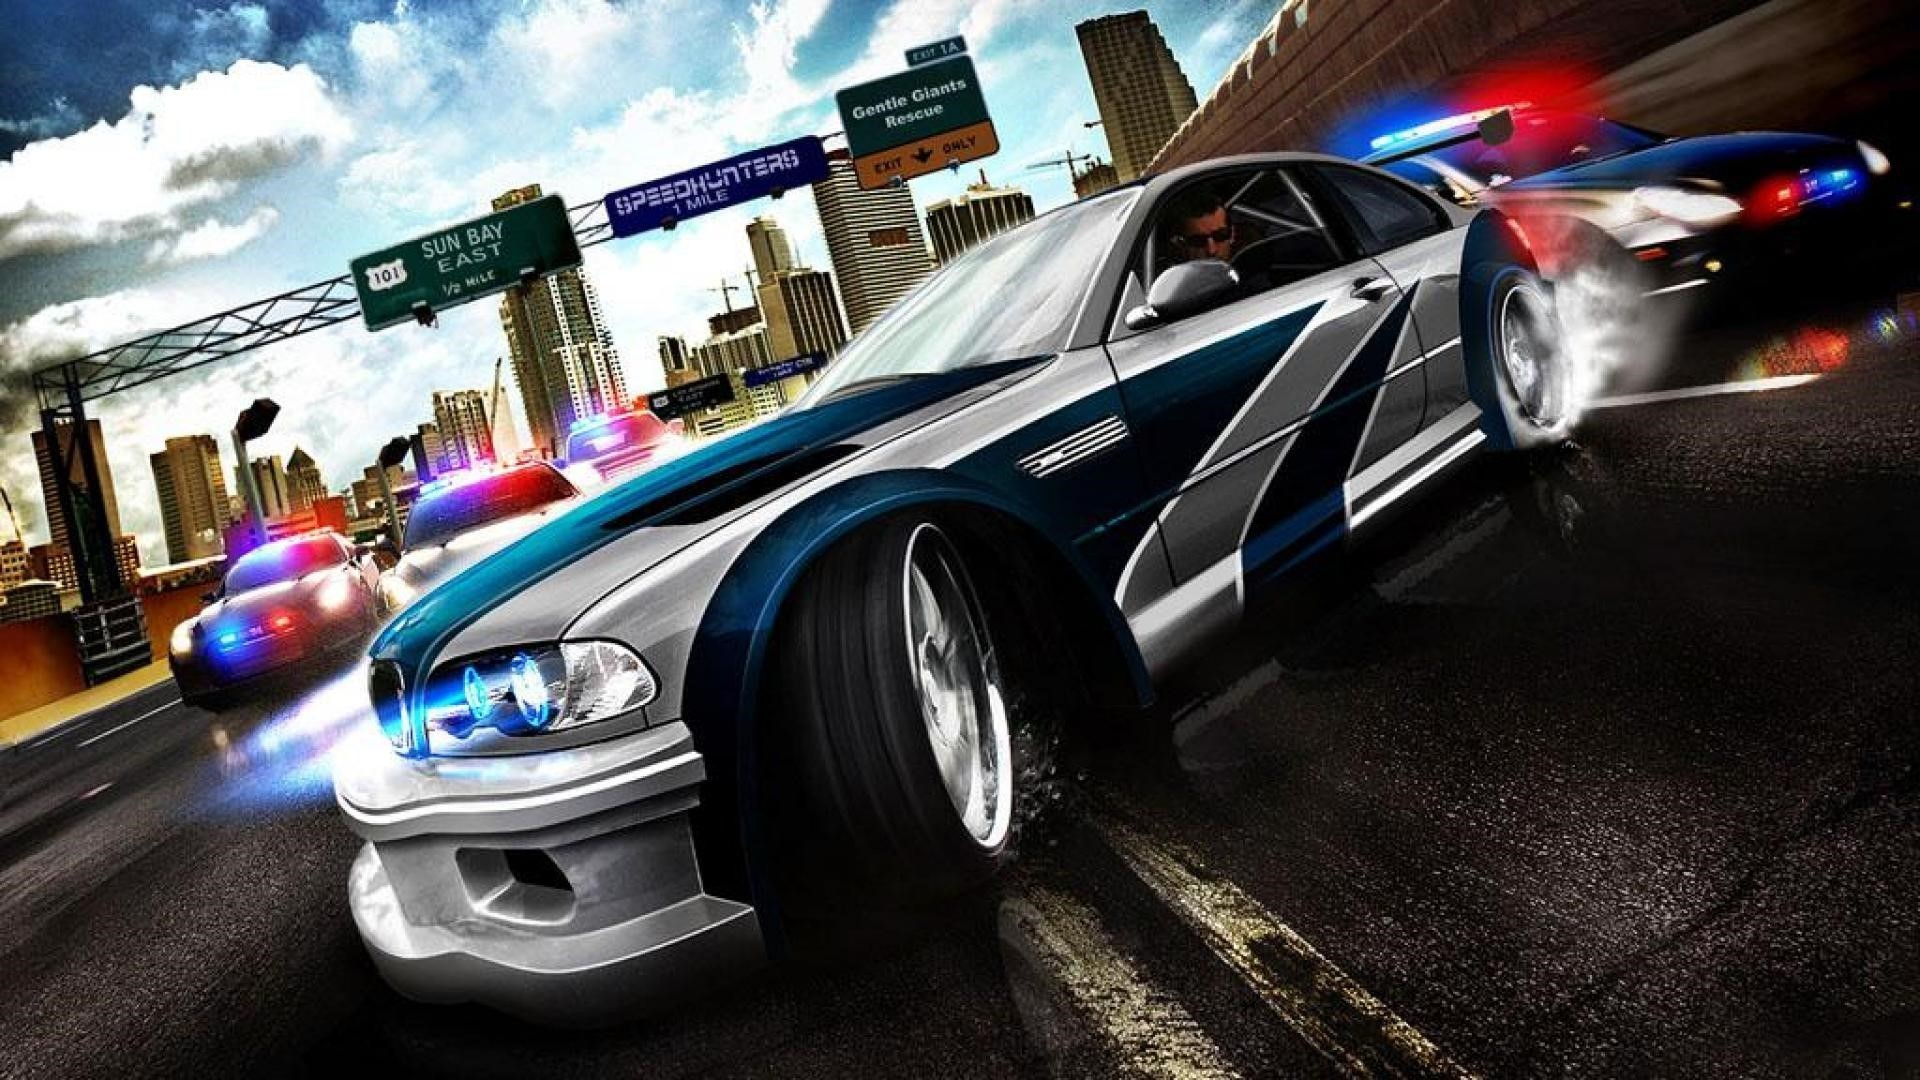 Need for Speed UHD Wallpapers